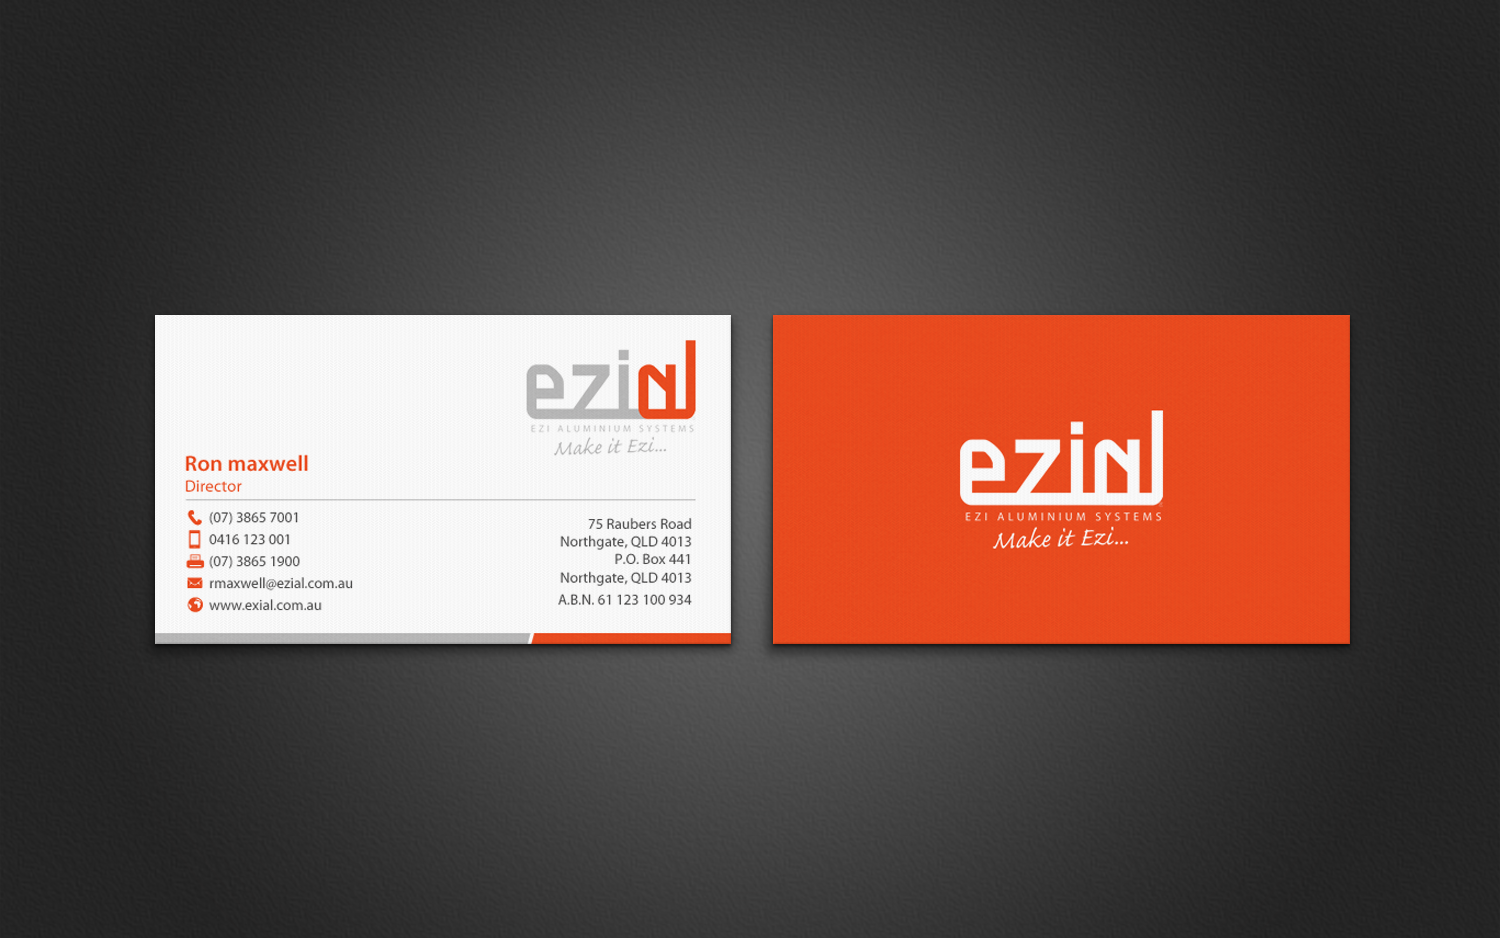 Modern, Professional Business Card Design for Ezi Aluminium Systems ...